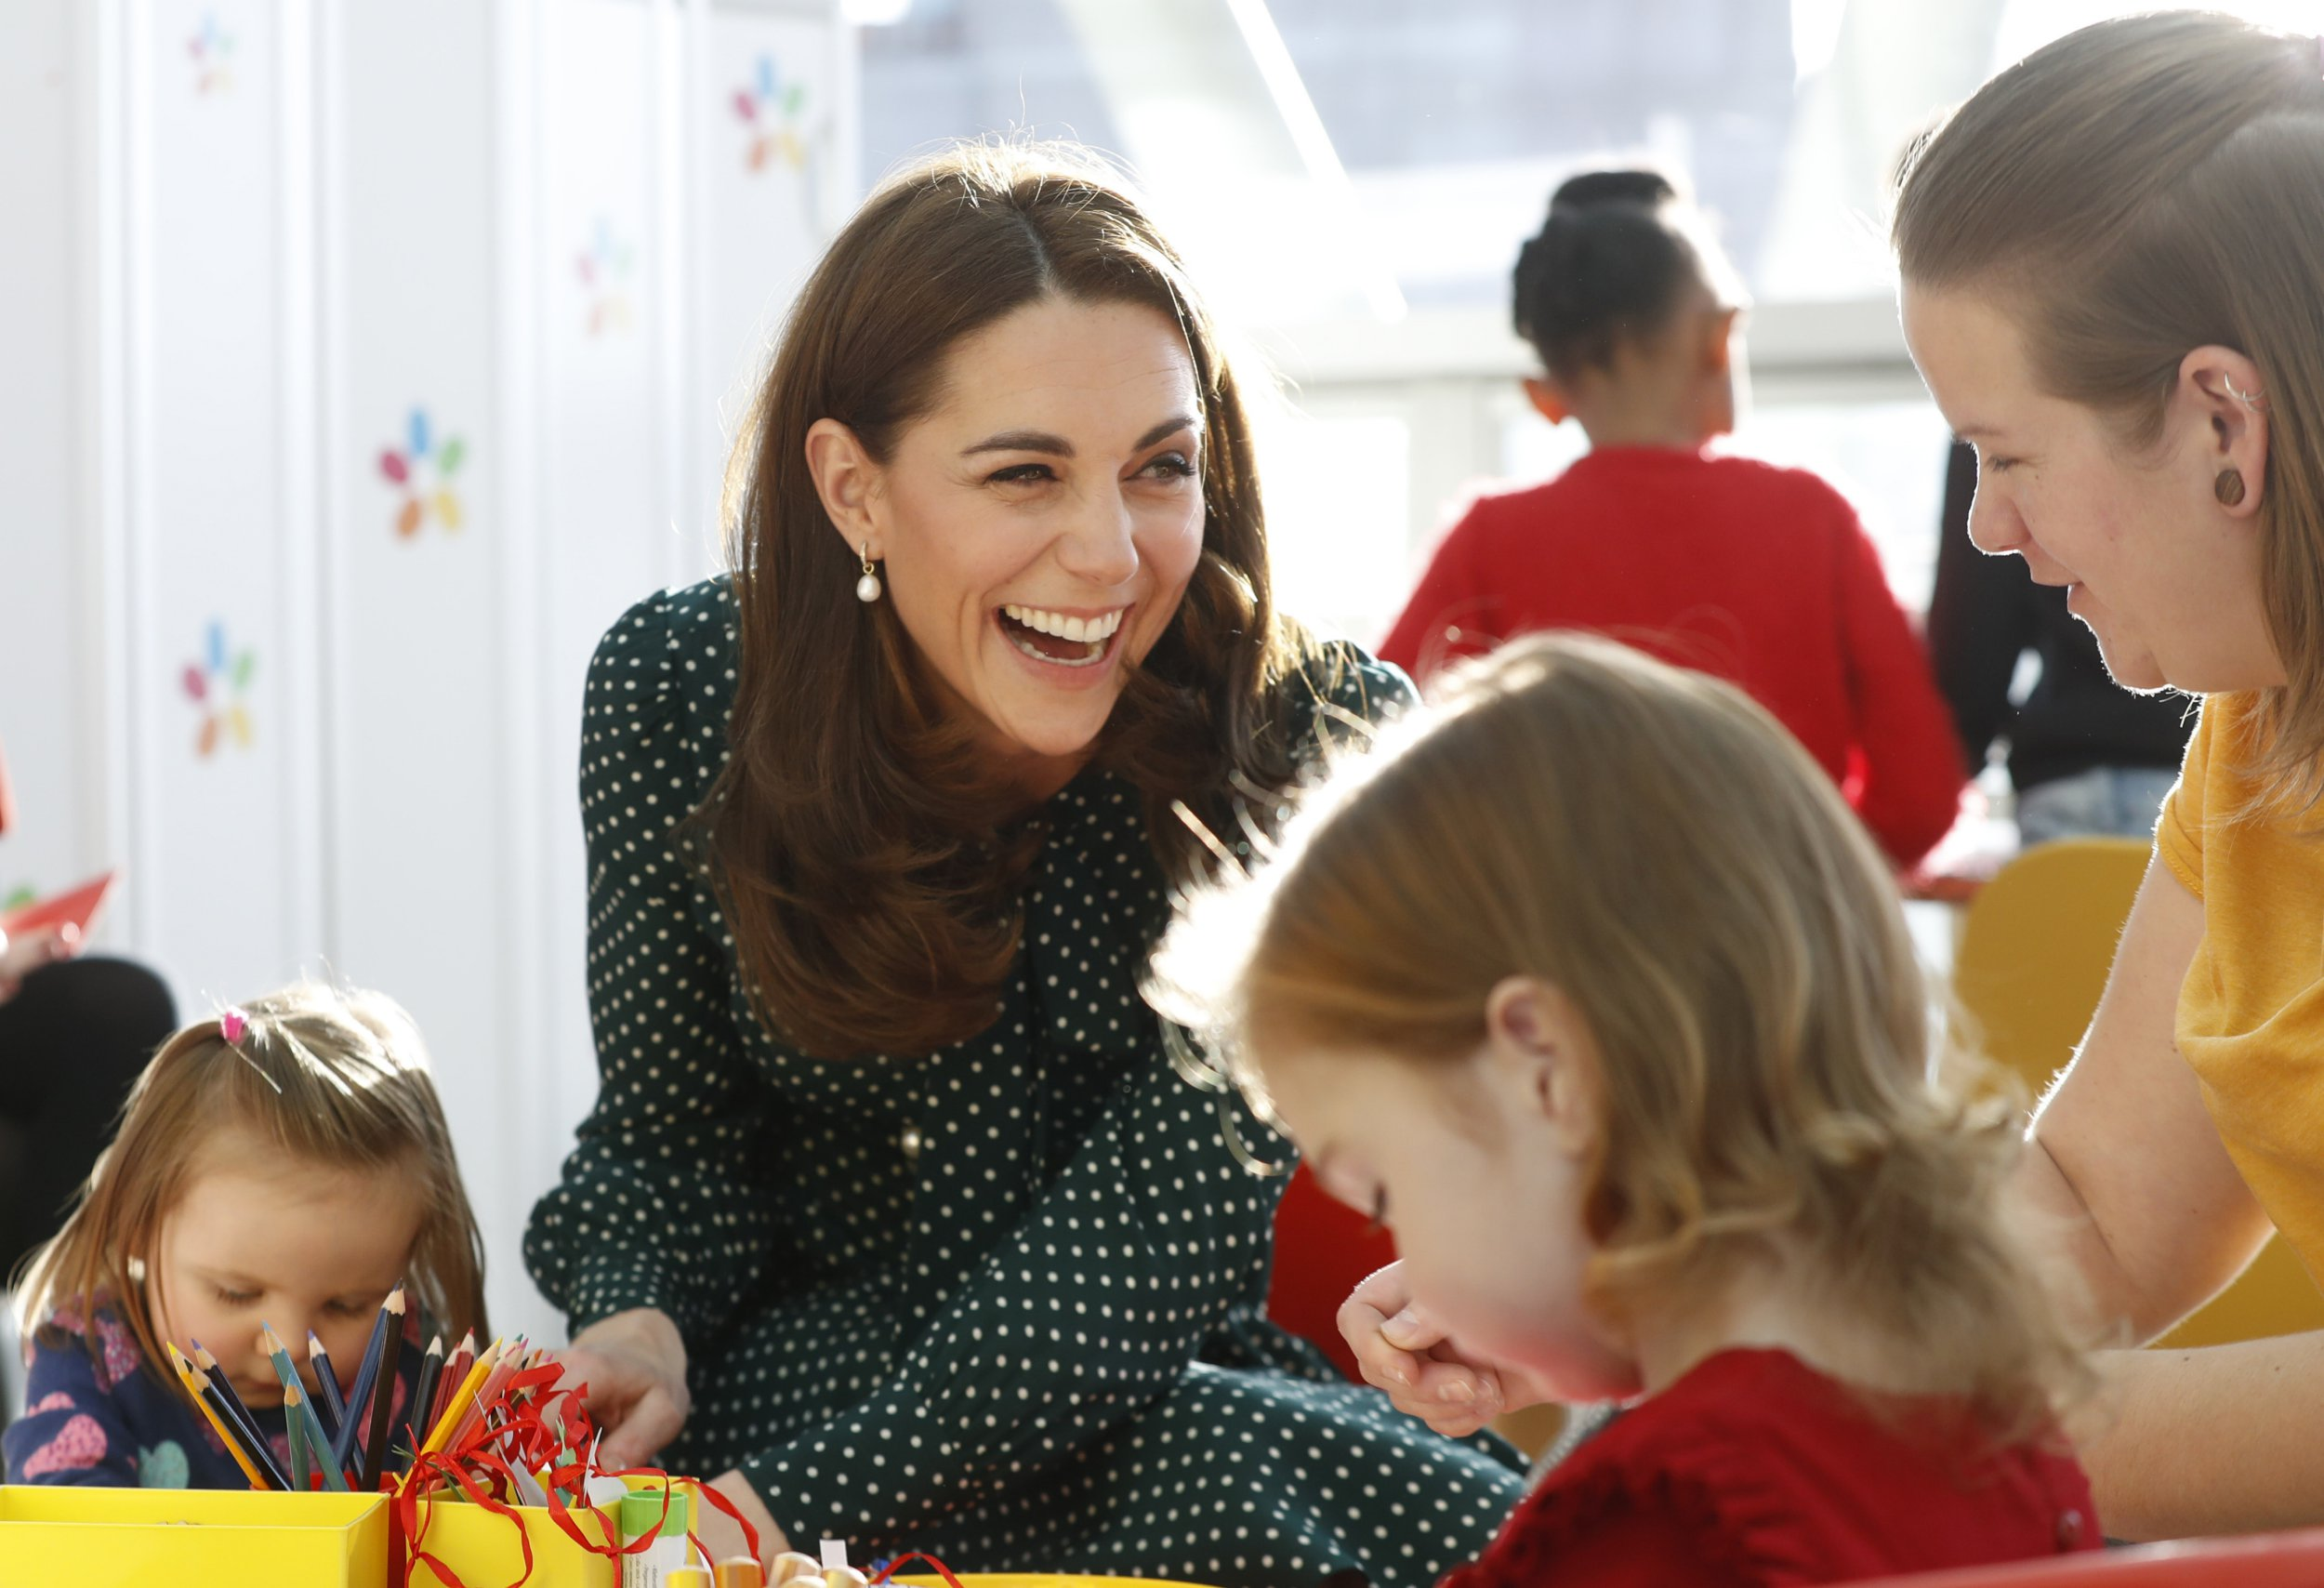 The Duchess of Cambridge during a visit to Evelina Children's Hospital in London. PRESS ASSOCIATION Photo. Picture date: Tuesday December 11, 2018. The Duke and Duchess met a number of children receiving care at the hospital, and heard from staff and parents about Evelina London?s life changing care and support for families. See PA story ROYAL Cambridge. Photo credit should read: Chris Jackson/PA Wire